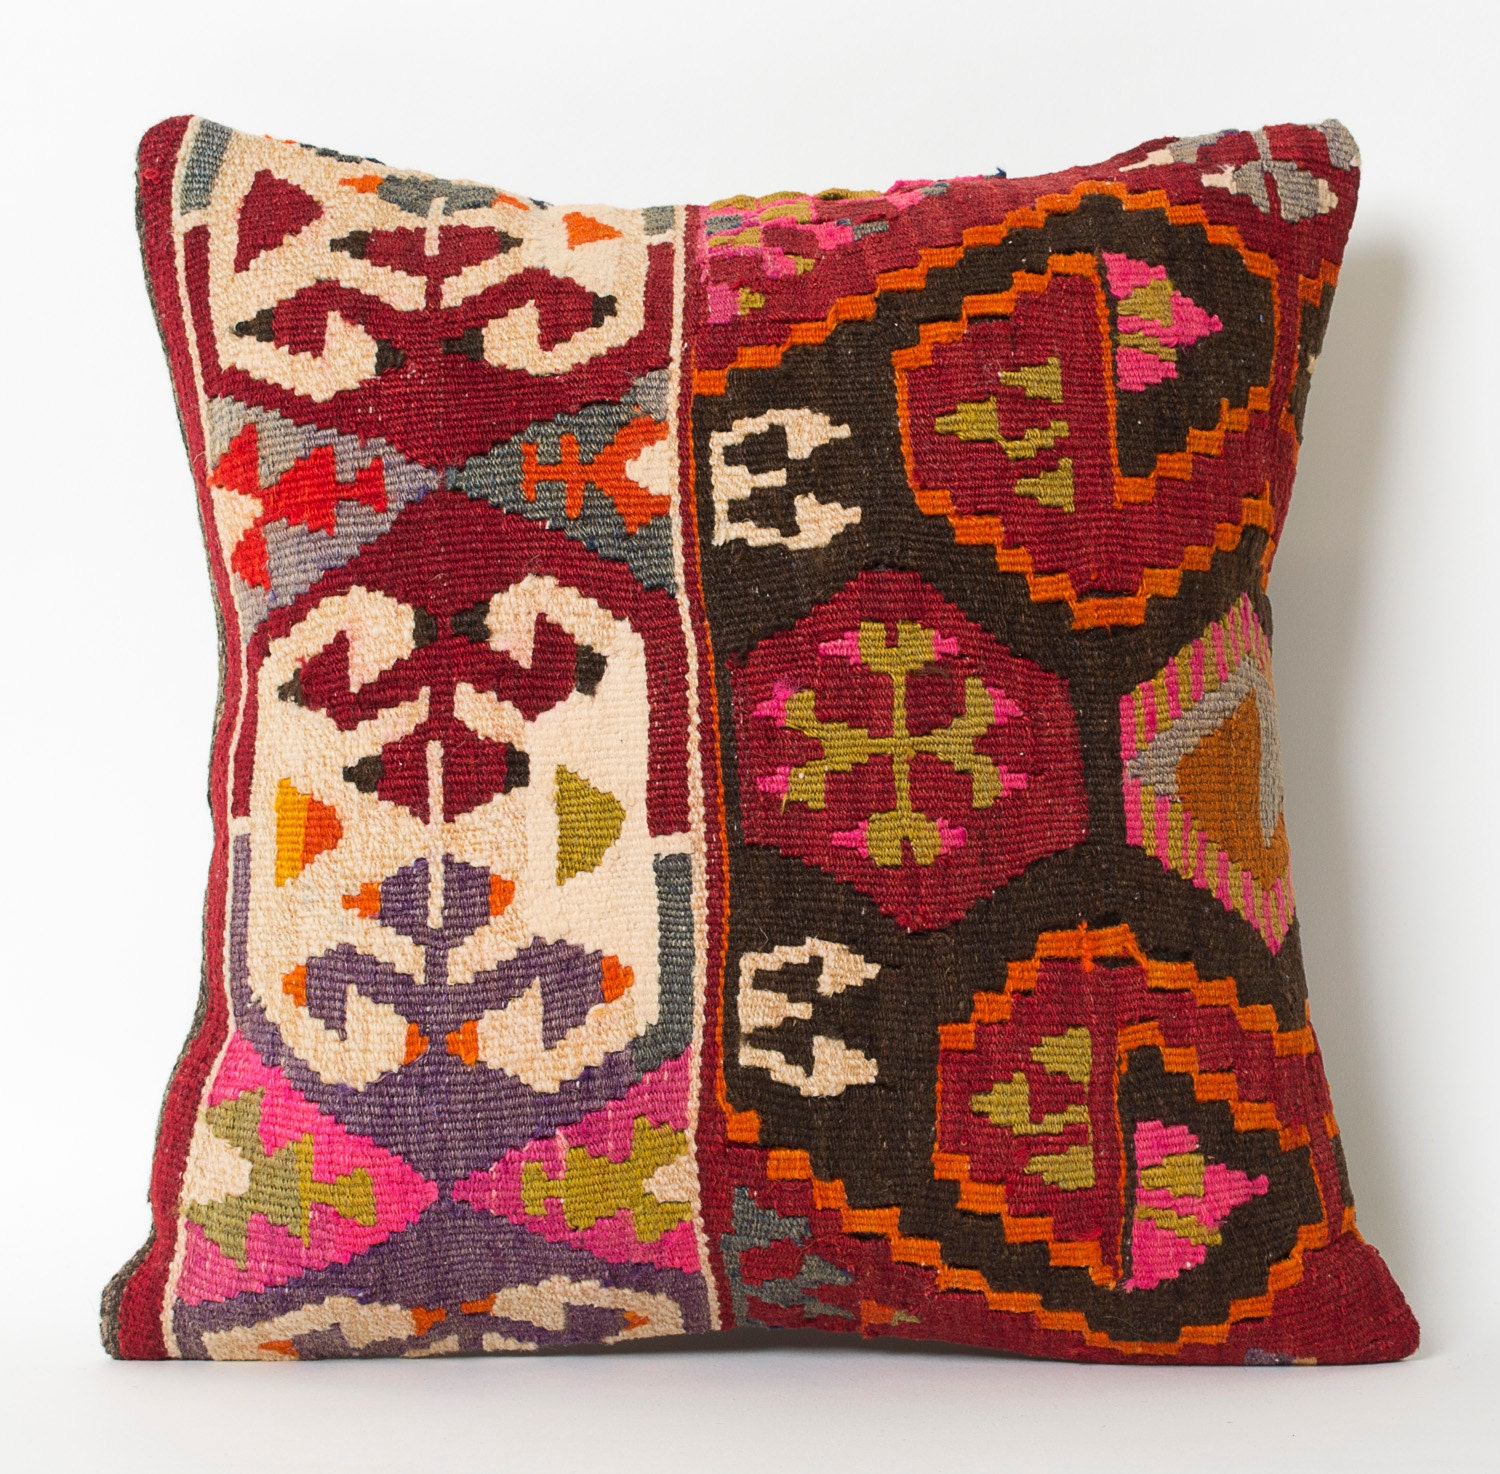 Decorative Pillows Kilim : ethnic pillow decorative pillow kilim pillow throw pillow